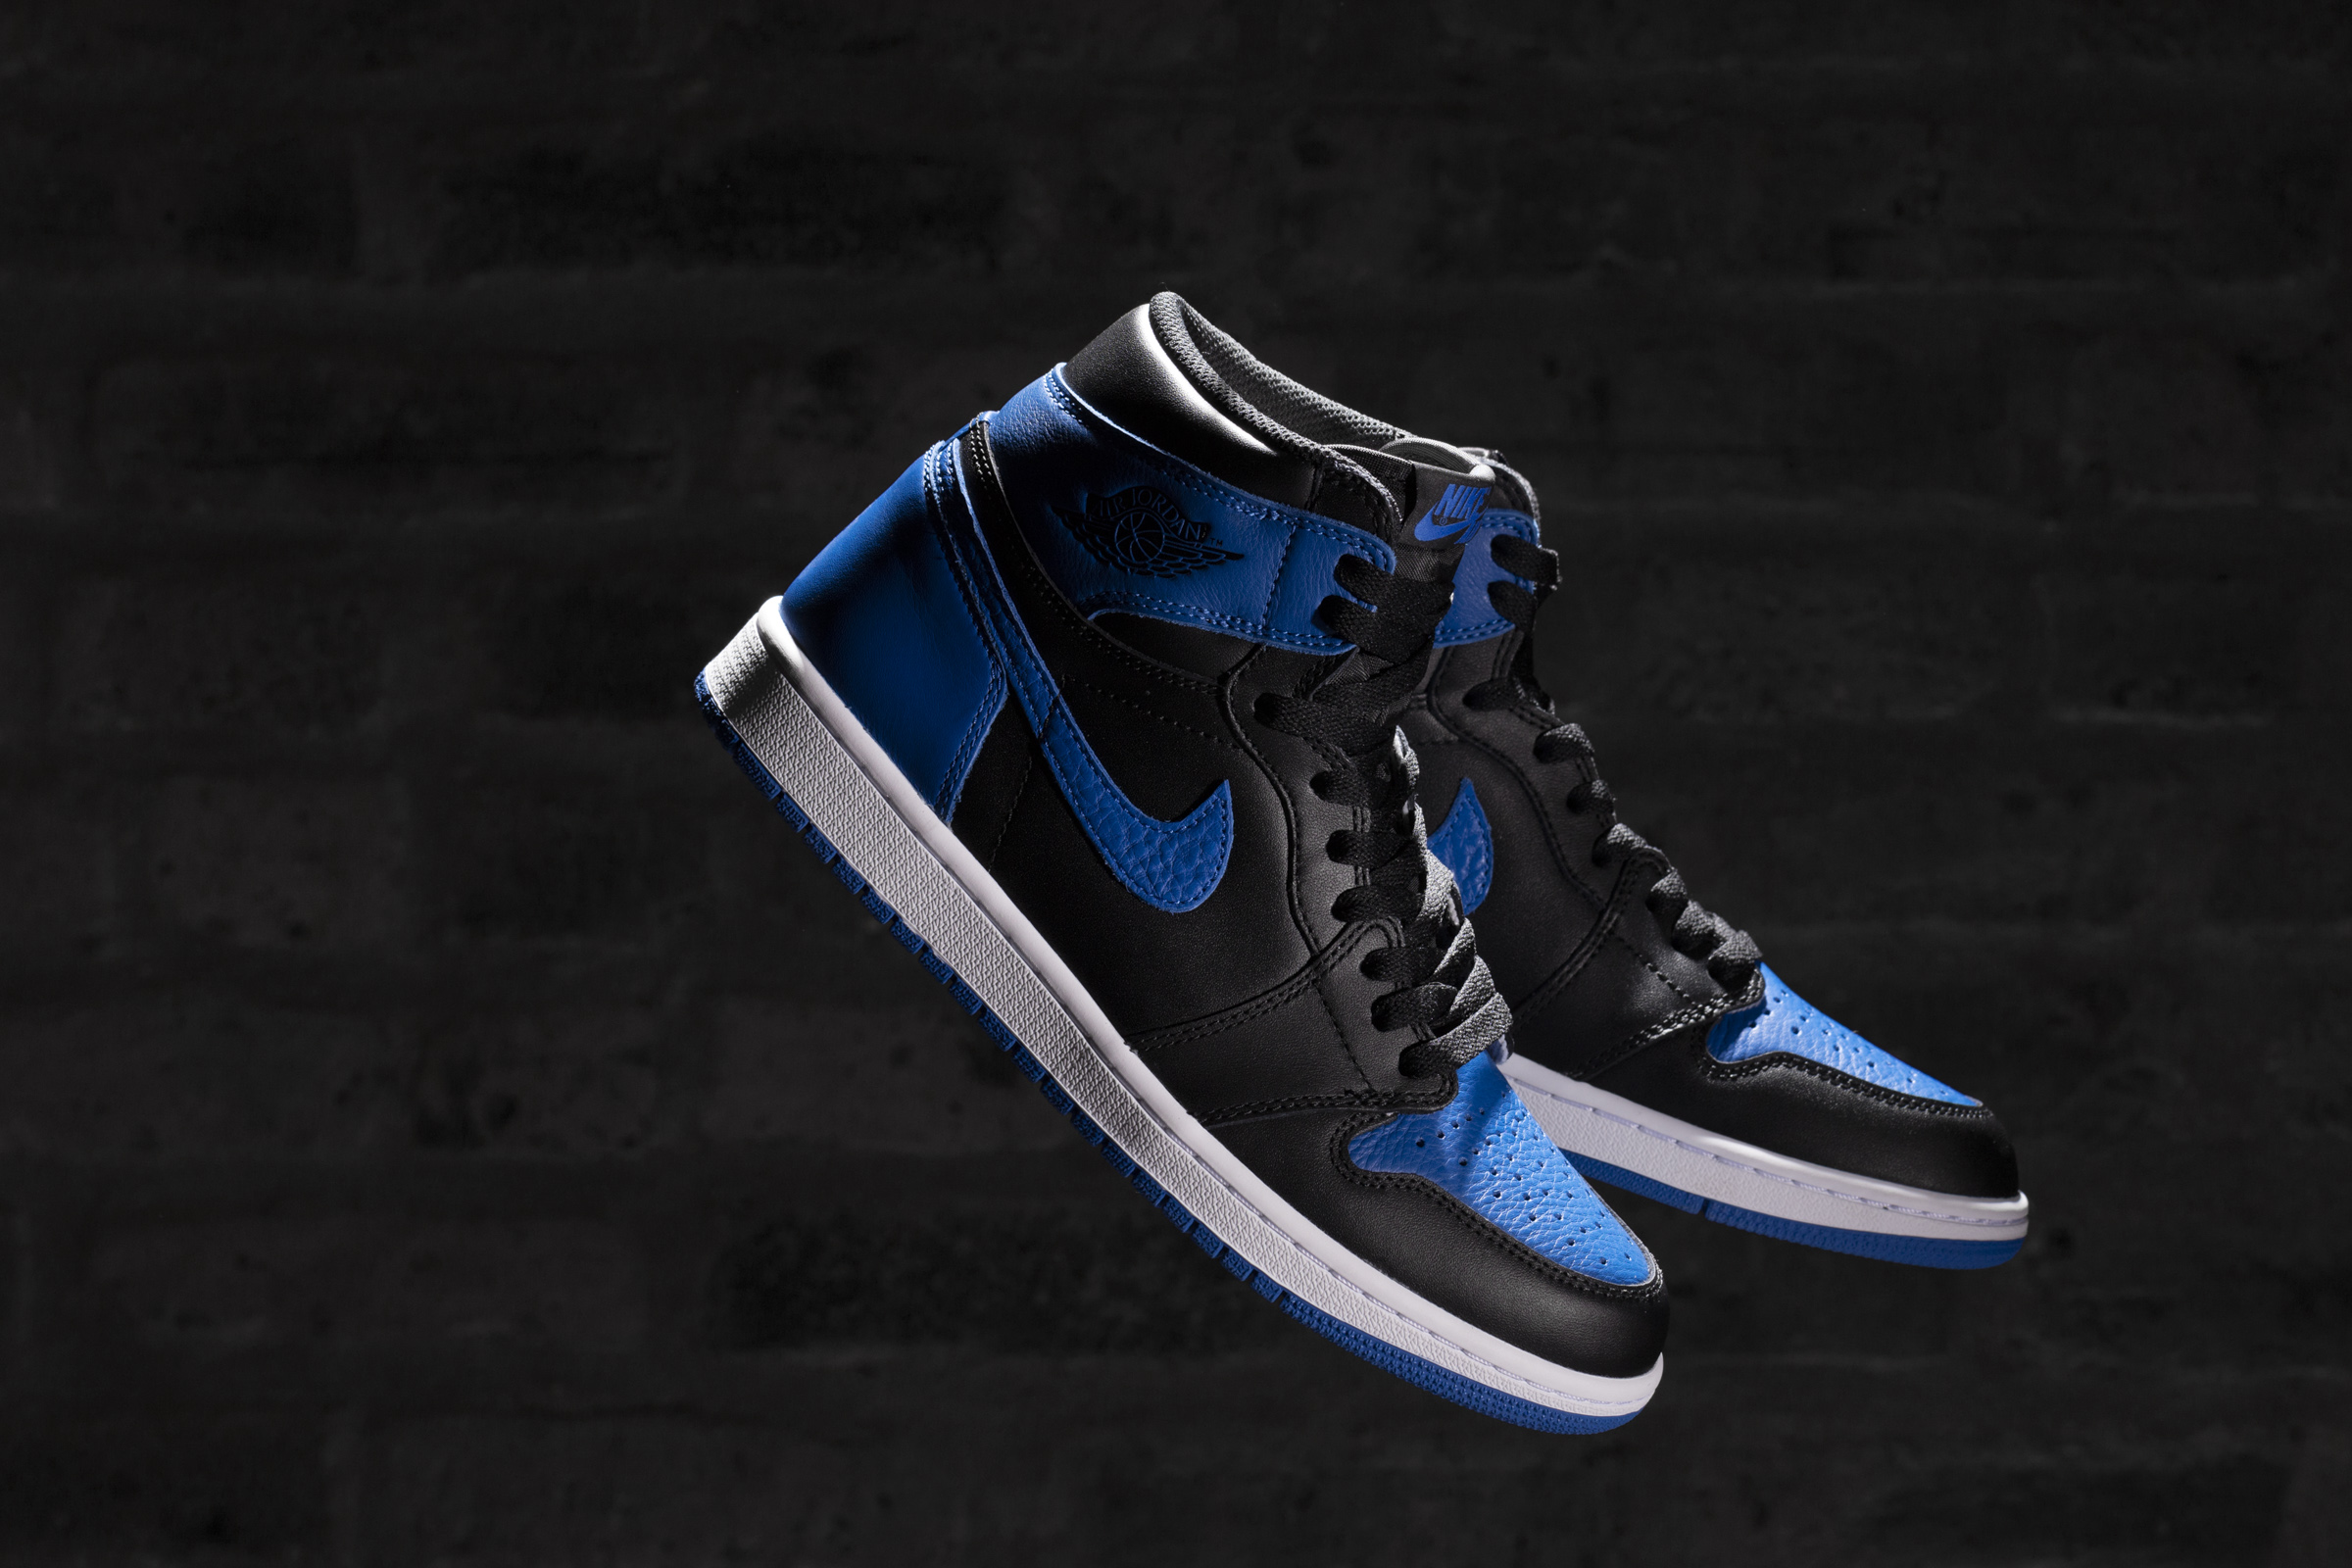 buy online 14f78 dbfb1 ... denmark air jordan 1 retro high royal color black varsity royal white  style code 555088 007